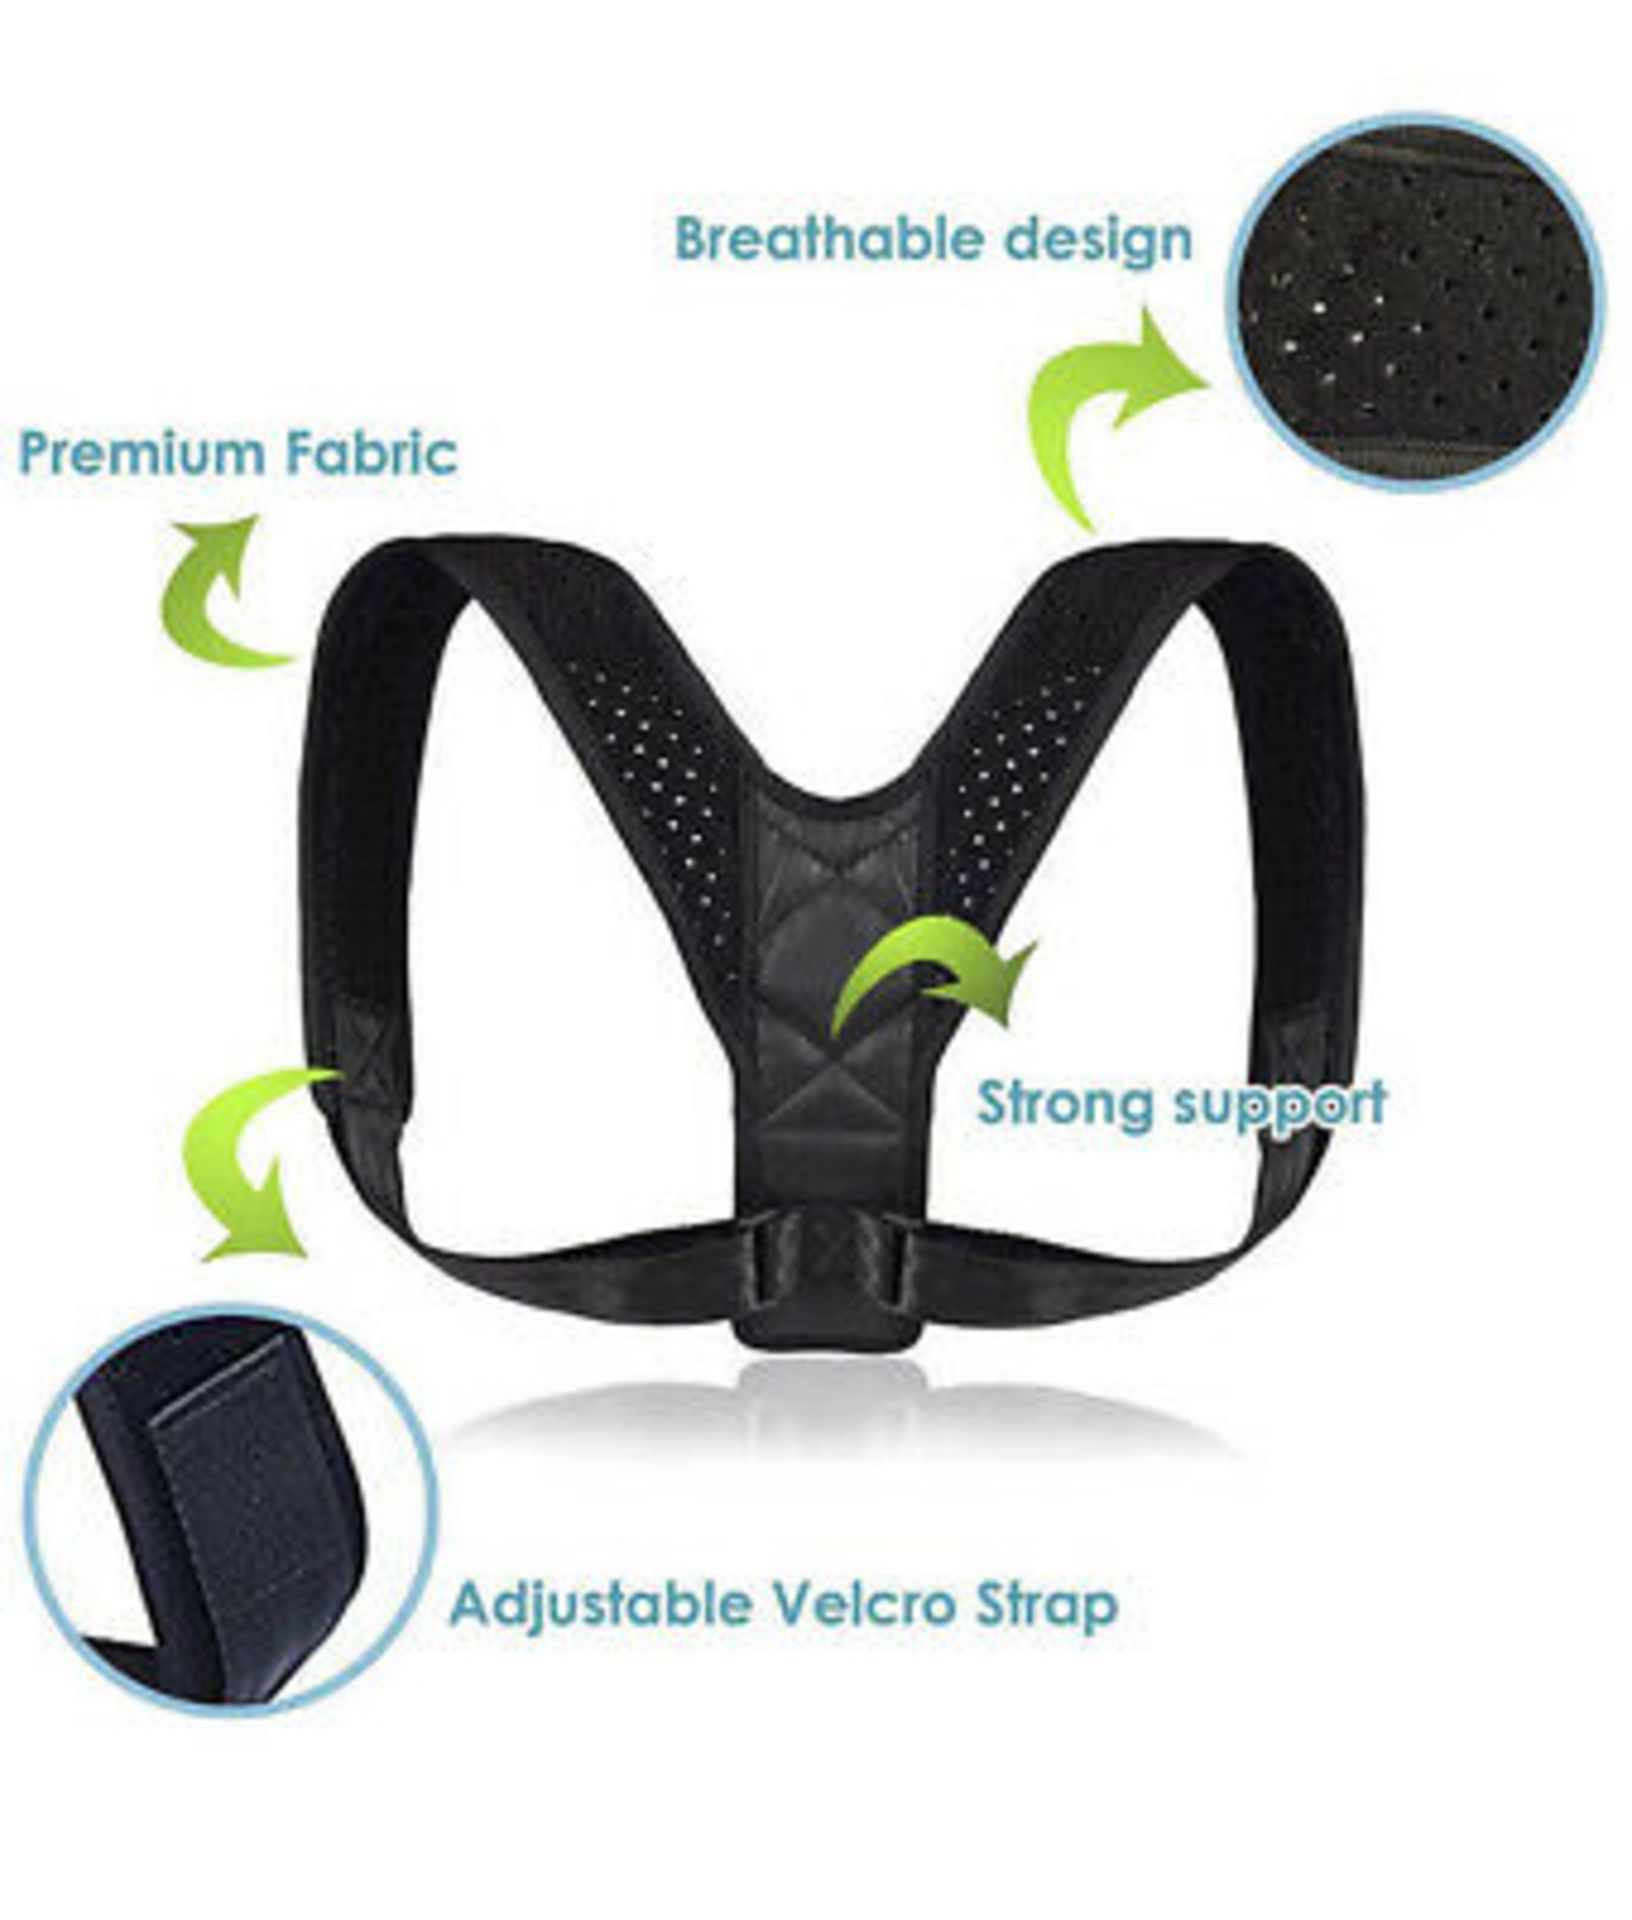 Brand New Back Support/Posture Corrector Rrp 27.99 - Image 2 of 2